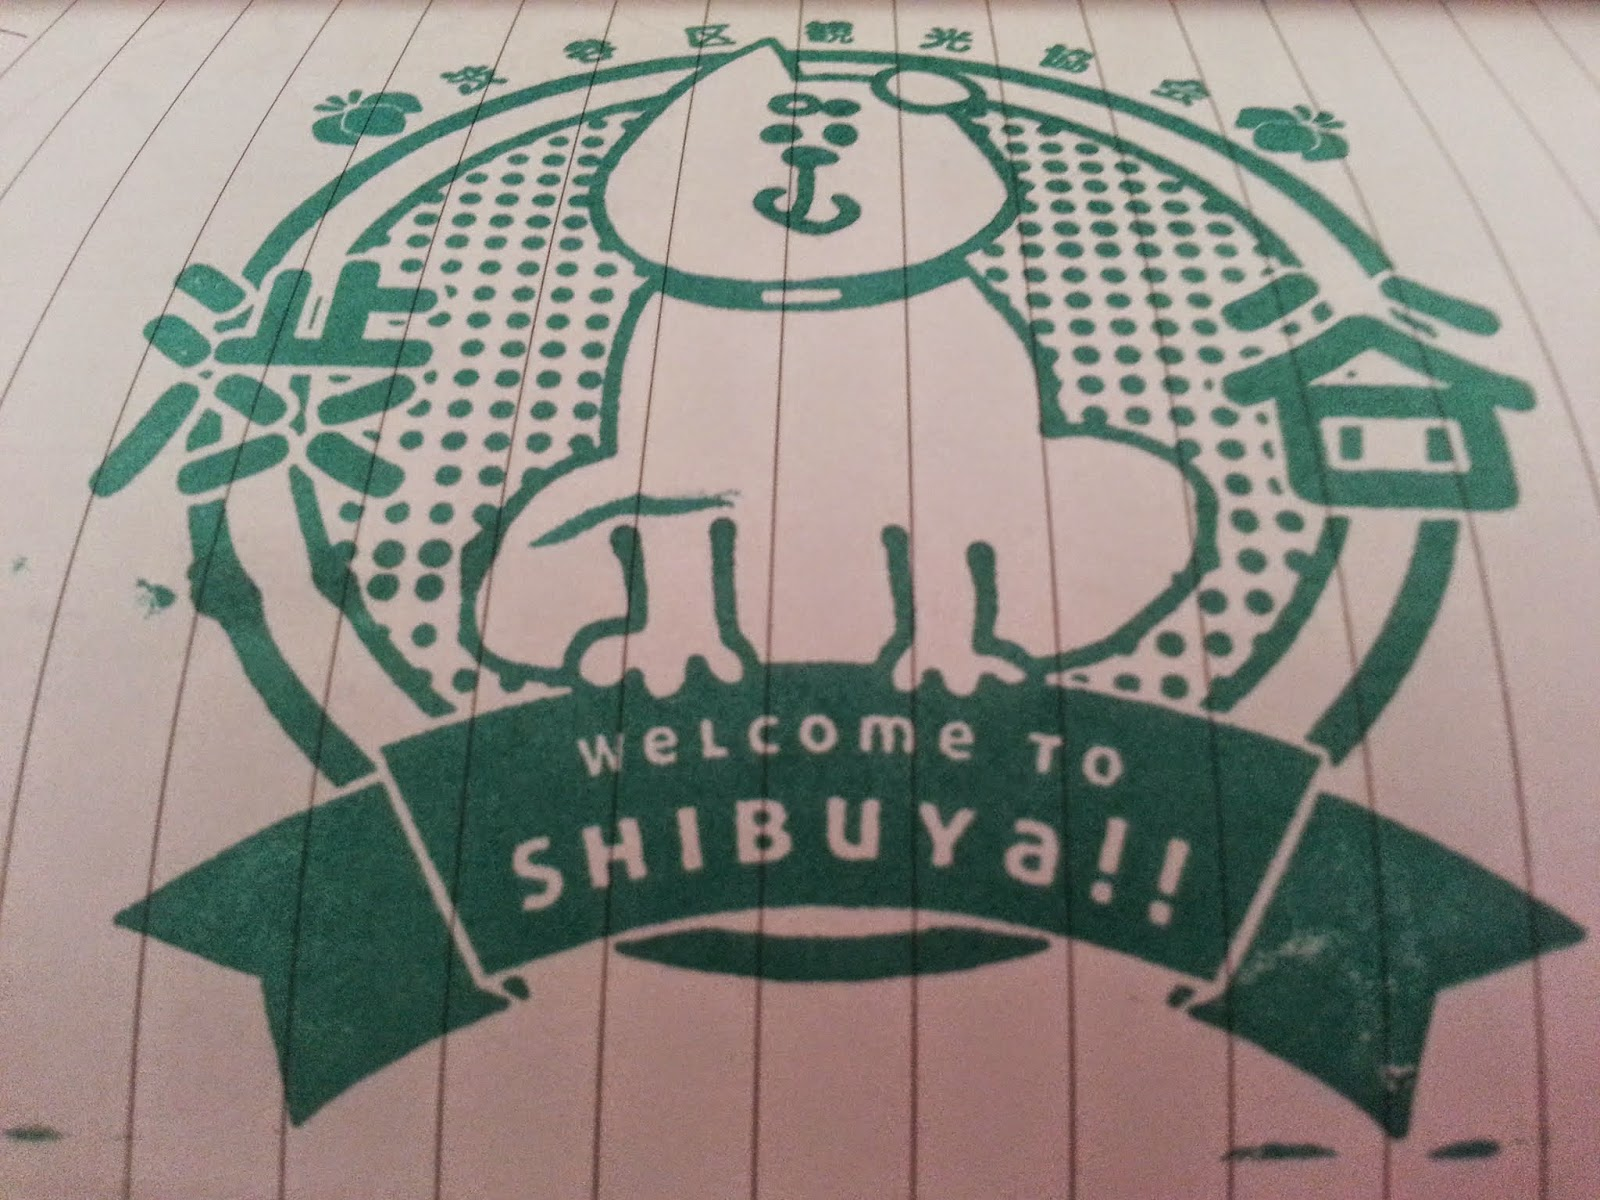 I was excited getting the Shibuya stamping at Shibuya Sakuragicho Museum, outside of Shibuya Station of Tokyo, Japan